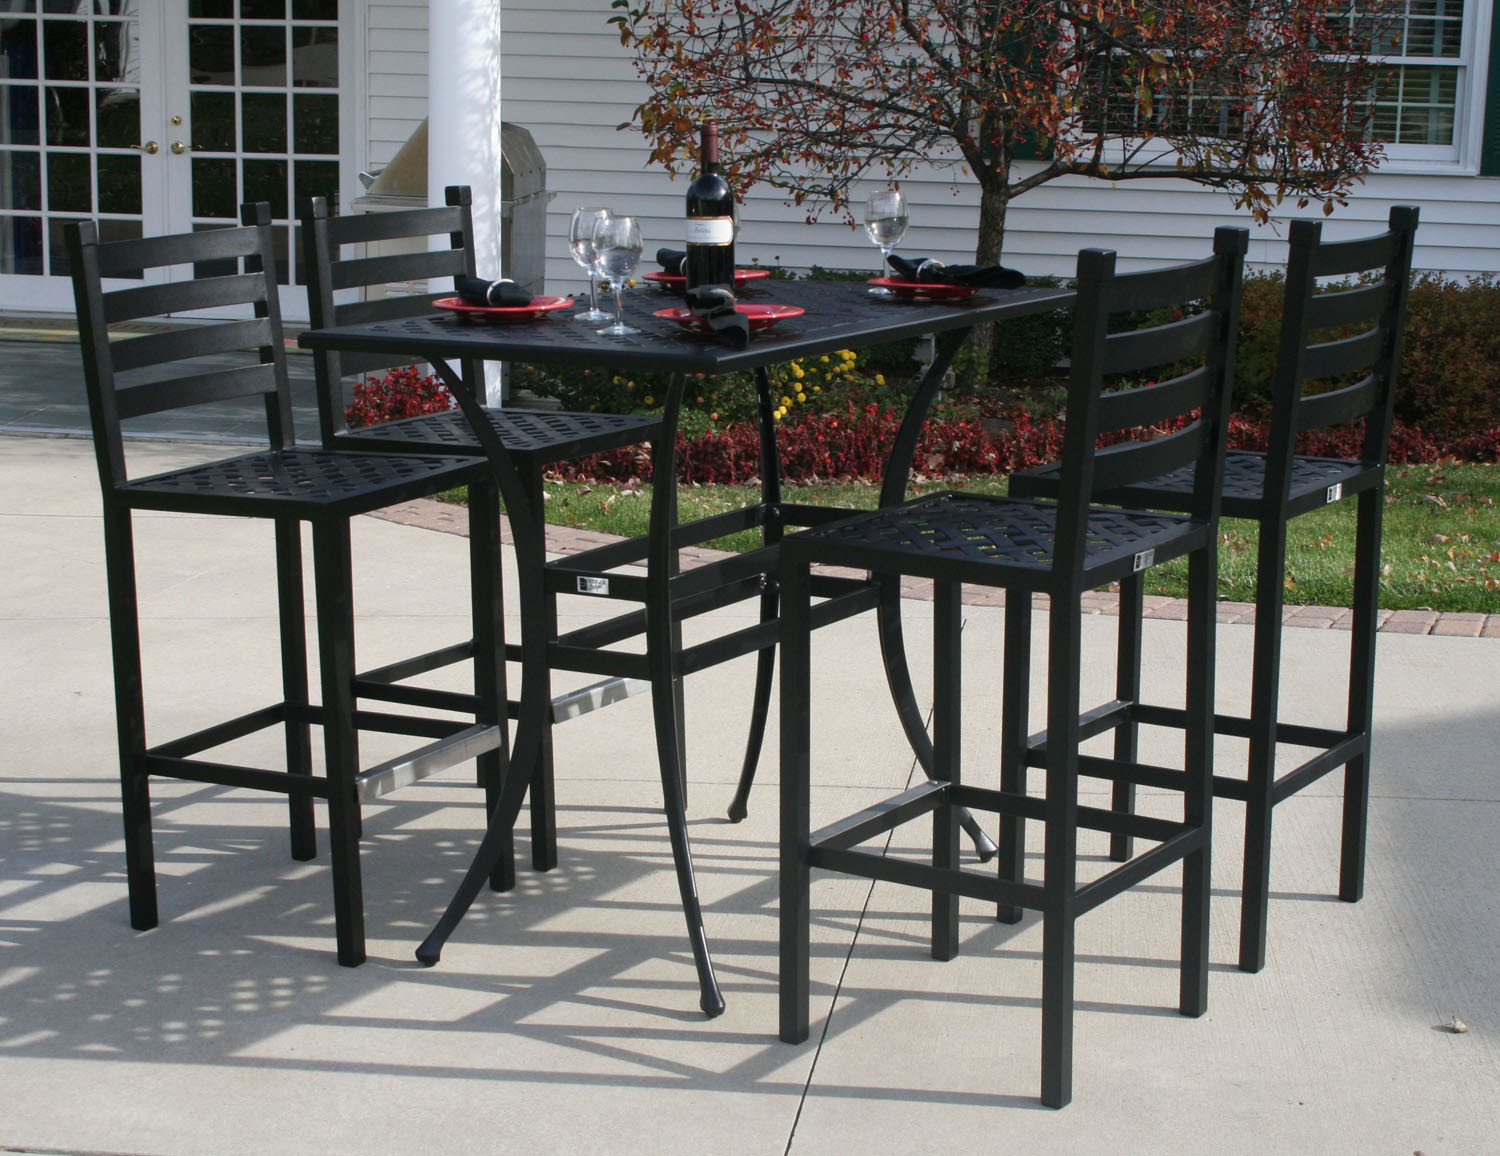 Best ideas about Bar Height Patio Furniture . Save or Pin Ansley Luxury 4 Person All Welded Cast Aluminum Patio Now.